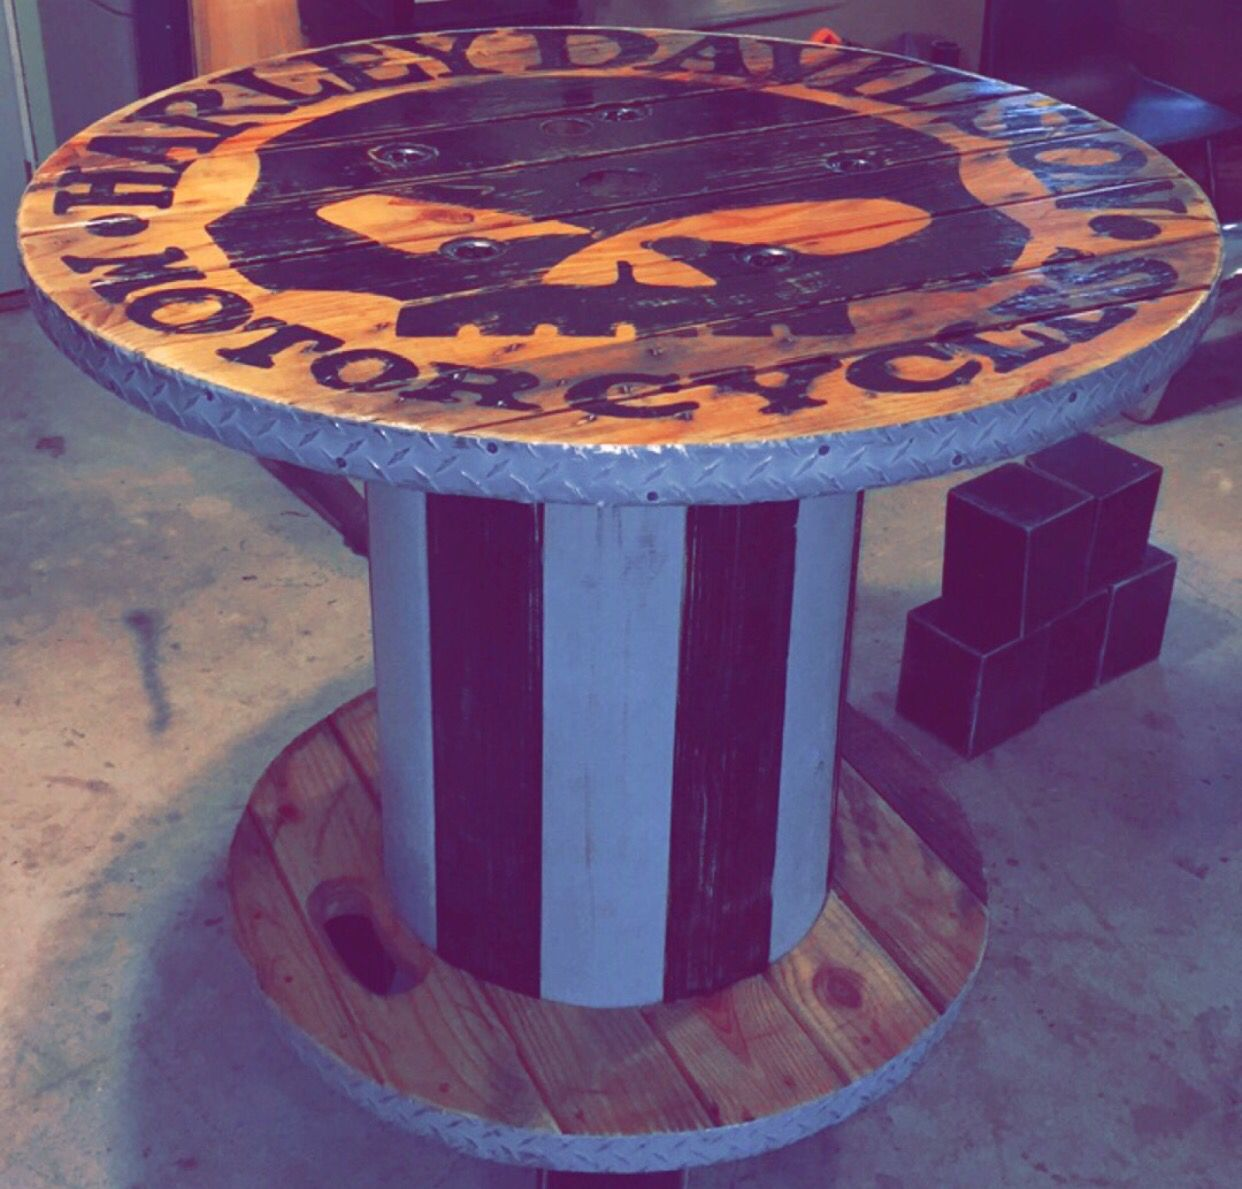 Wooden Spool Harley Davidson Table   My Creations/Cool Spool Crafts ...